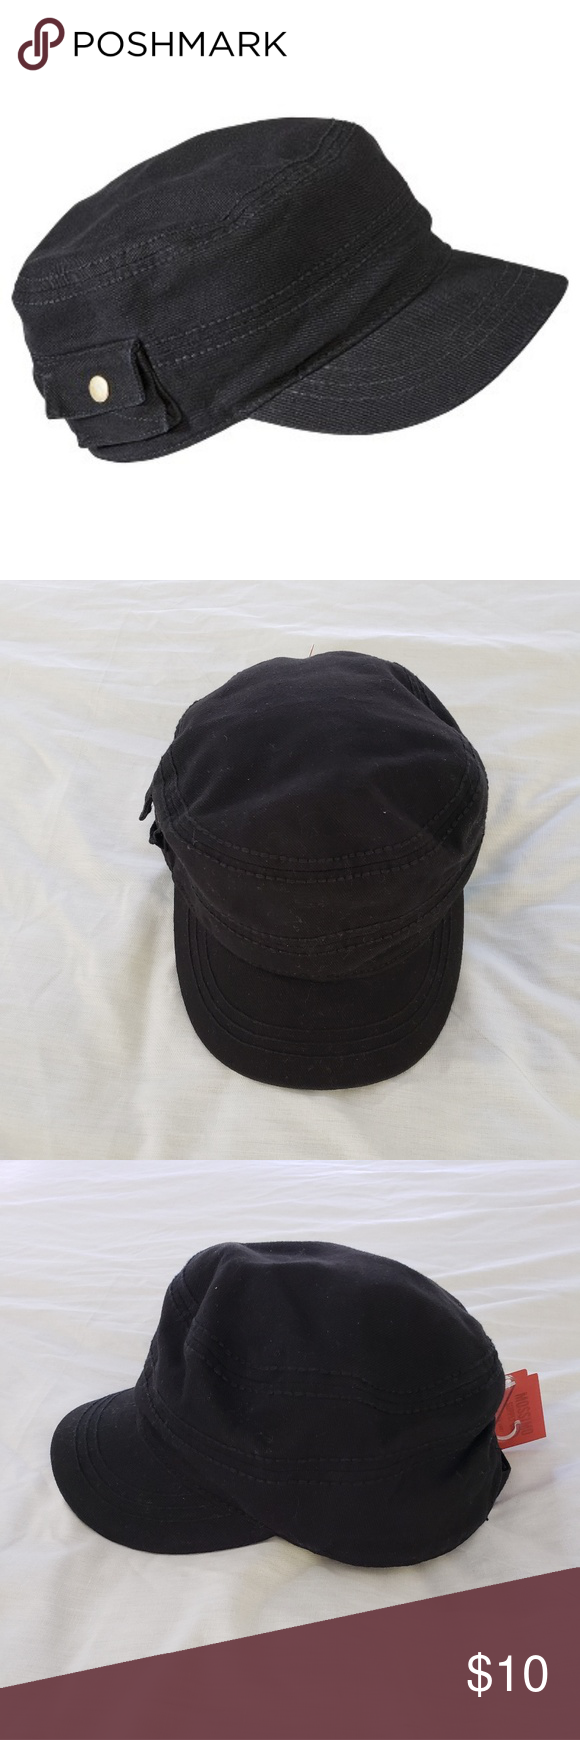 aeab0d526 Women's Mossimo Black Conductor Hat w/Pocket Mossimo Supply Co ...